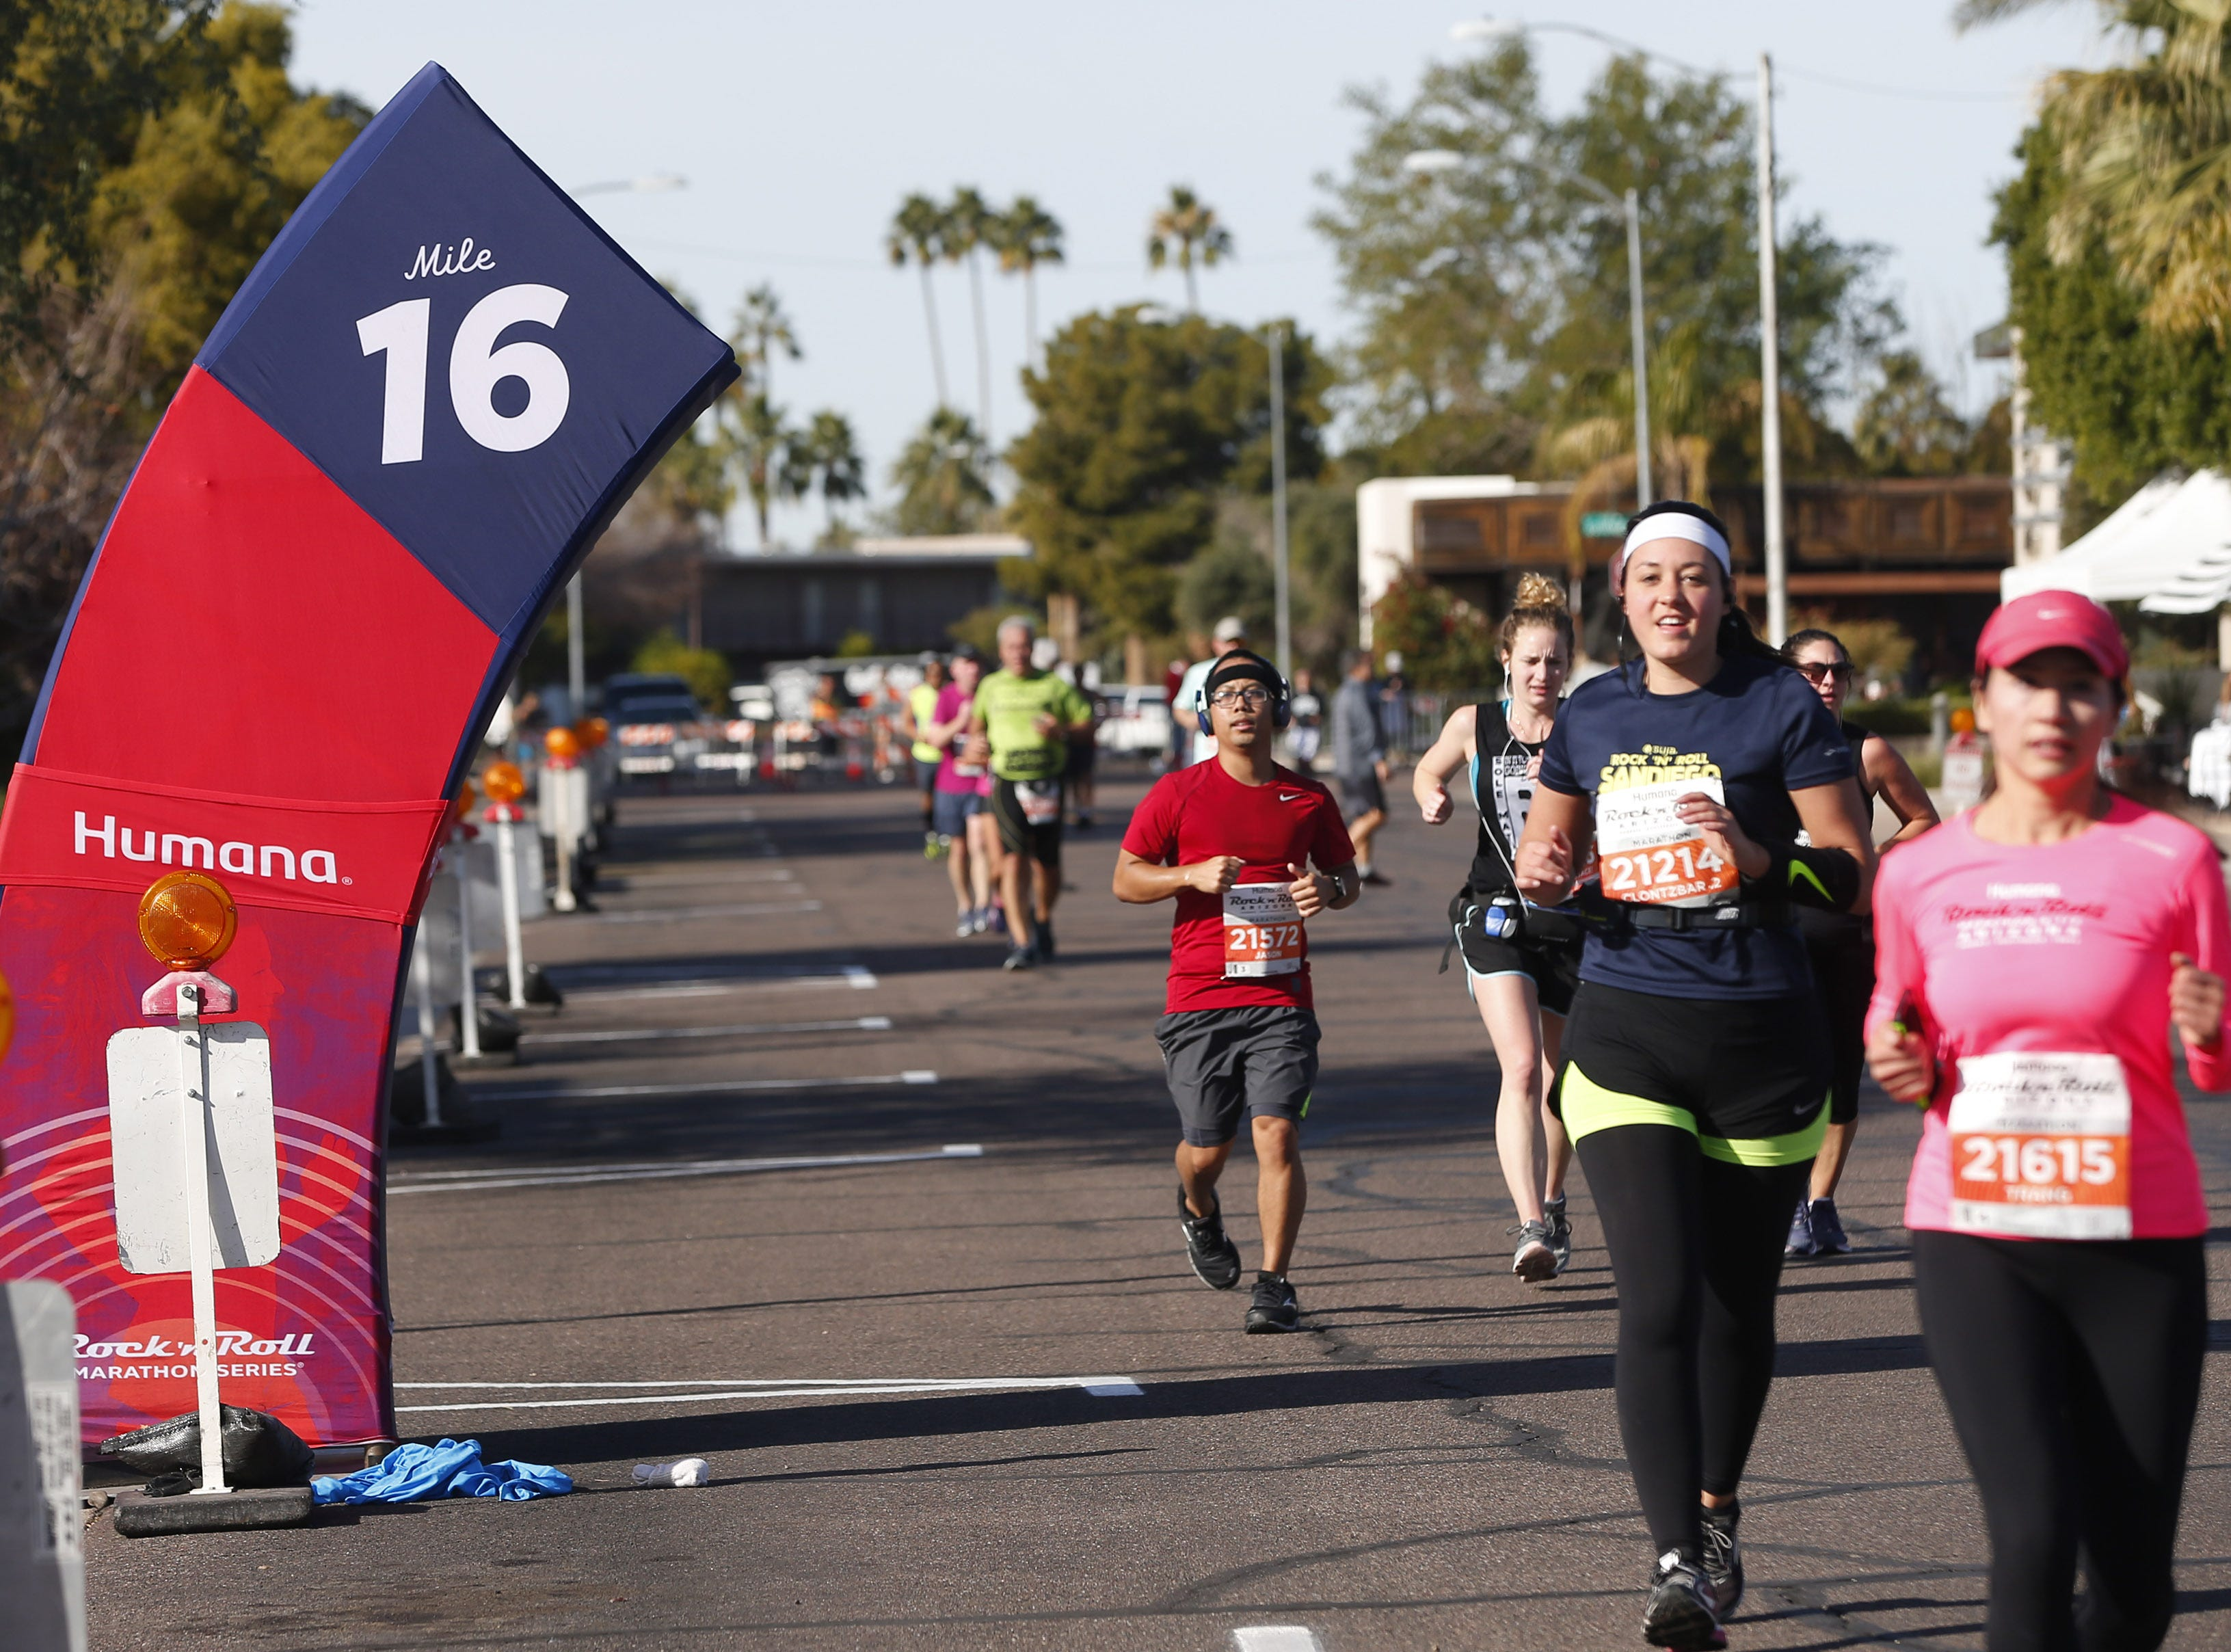 Runners cross the 16-mile marker during the Rock 'N' Roll Marathon in Scottsdale on Jan. 20, 2019.